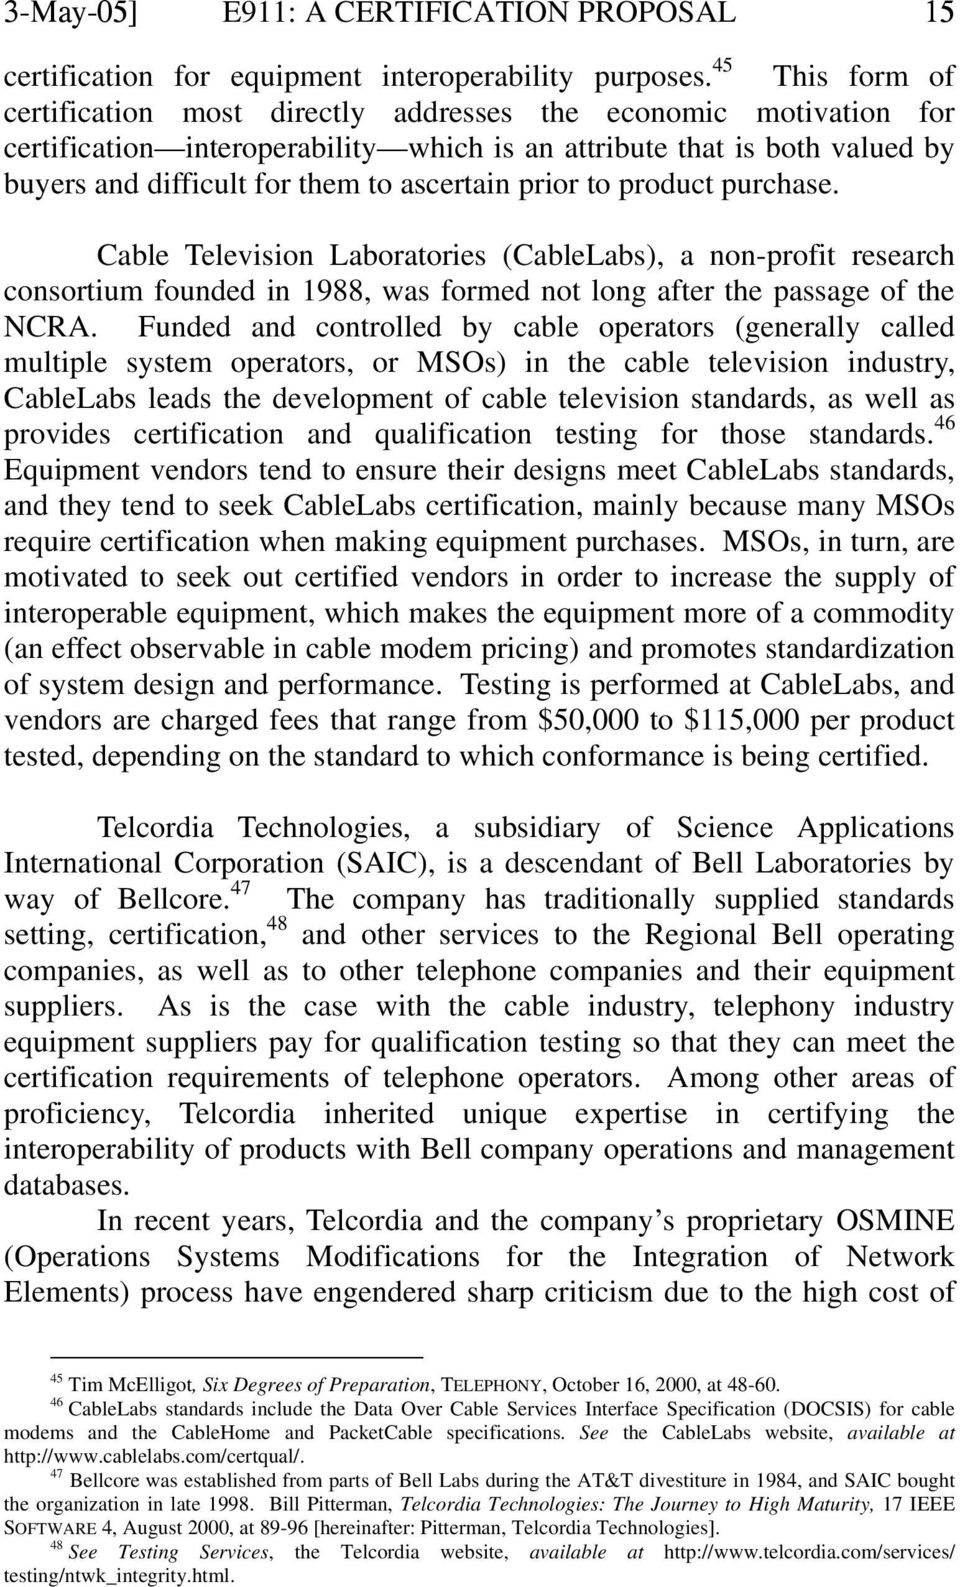 ascertain prior to product purchase. Cable Television Laboratories (CableLabs), a non-profit research consortium founded in 1988, was formed not long after the passage of the NCRA.